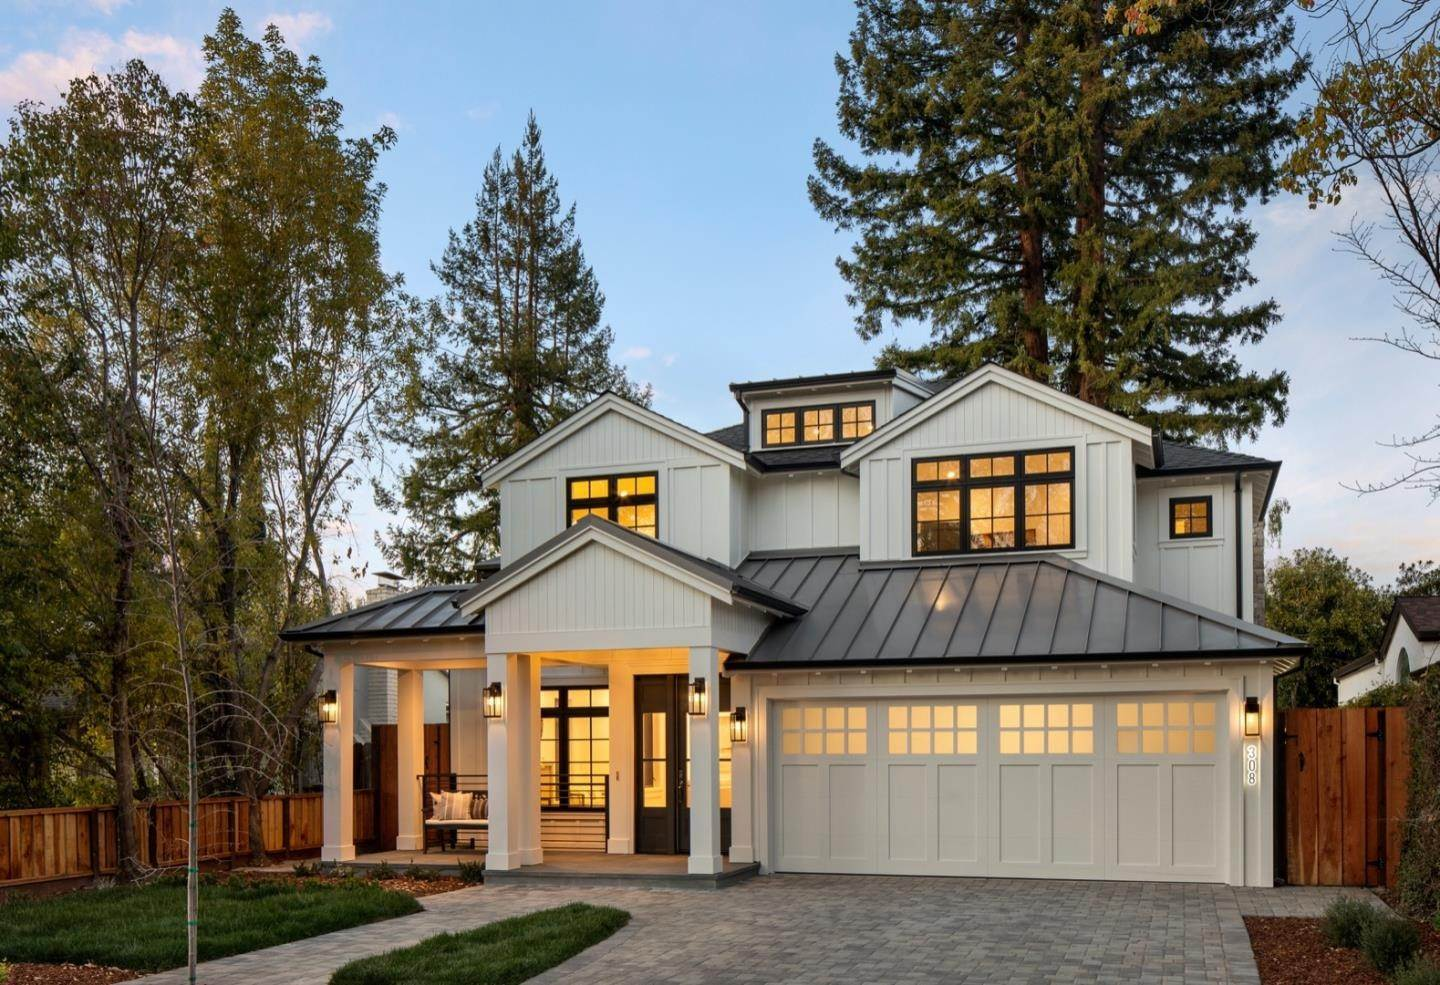 Single Family Homes for Sale at 308 Arbor Road Menlo Park, California 94025 United States